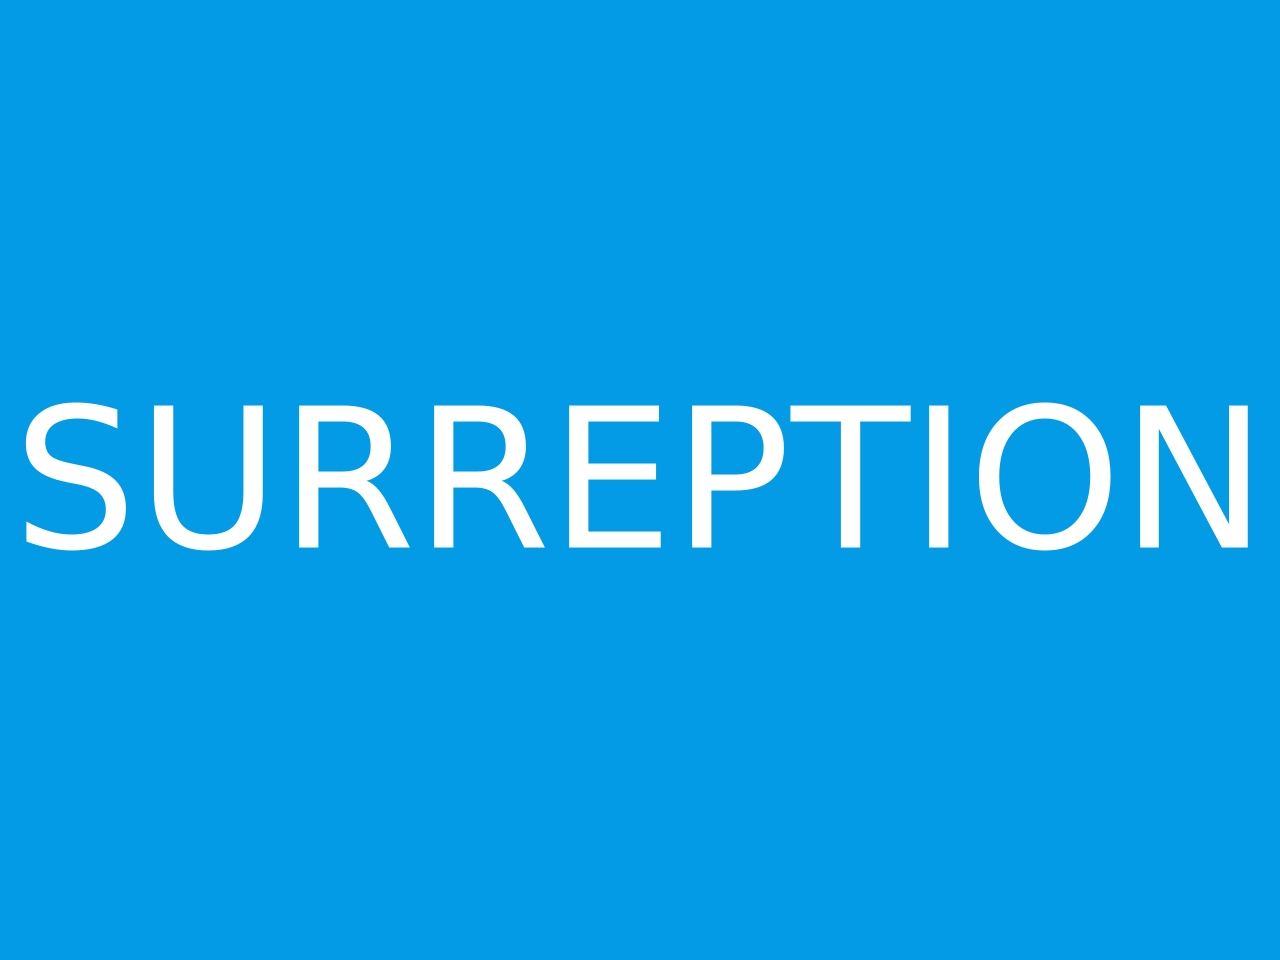 How to pronounce SURREPTION in English  JustPronounce